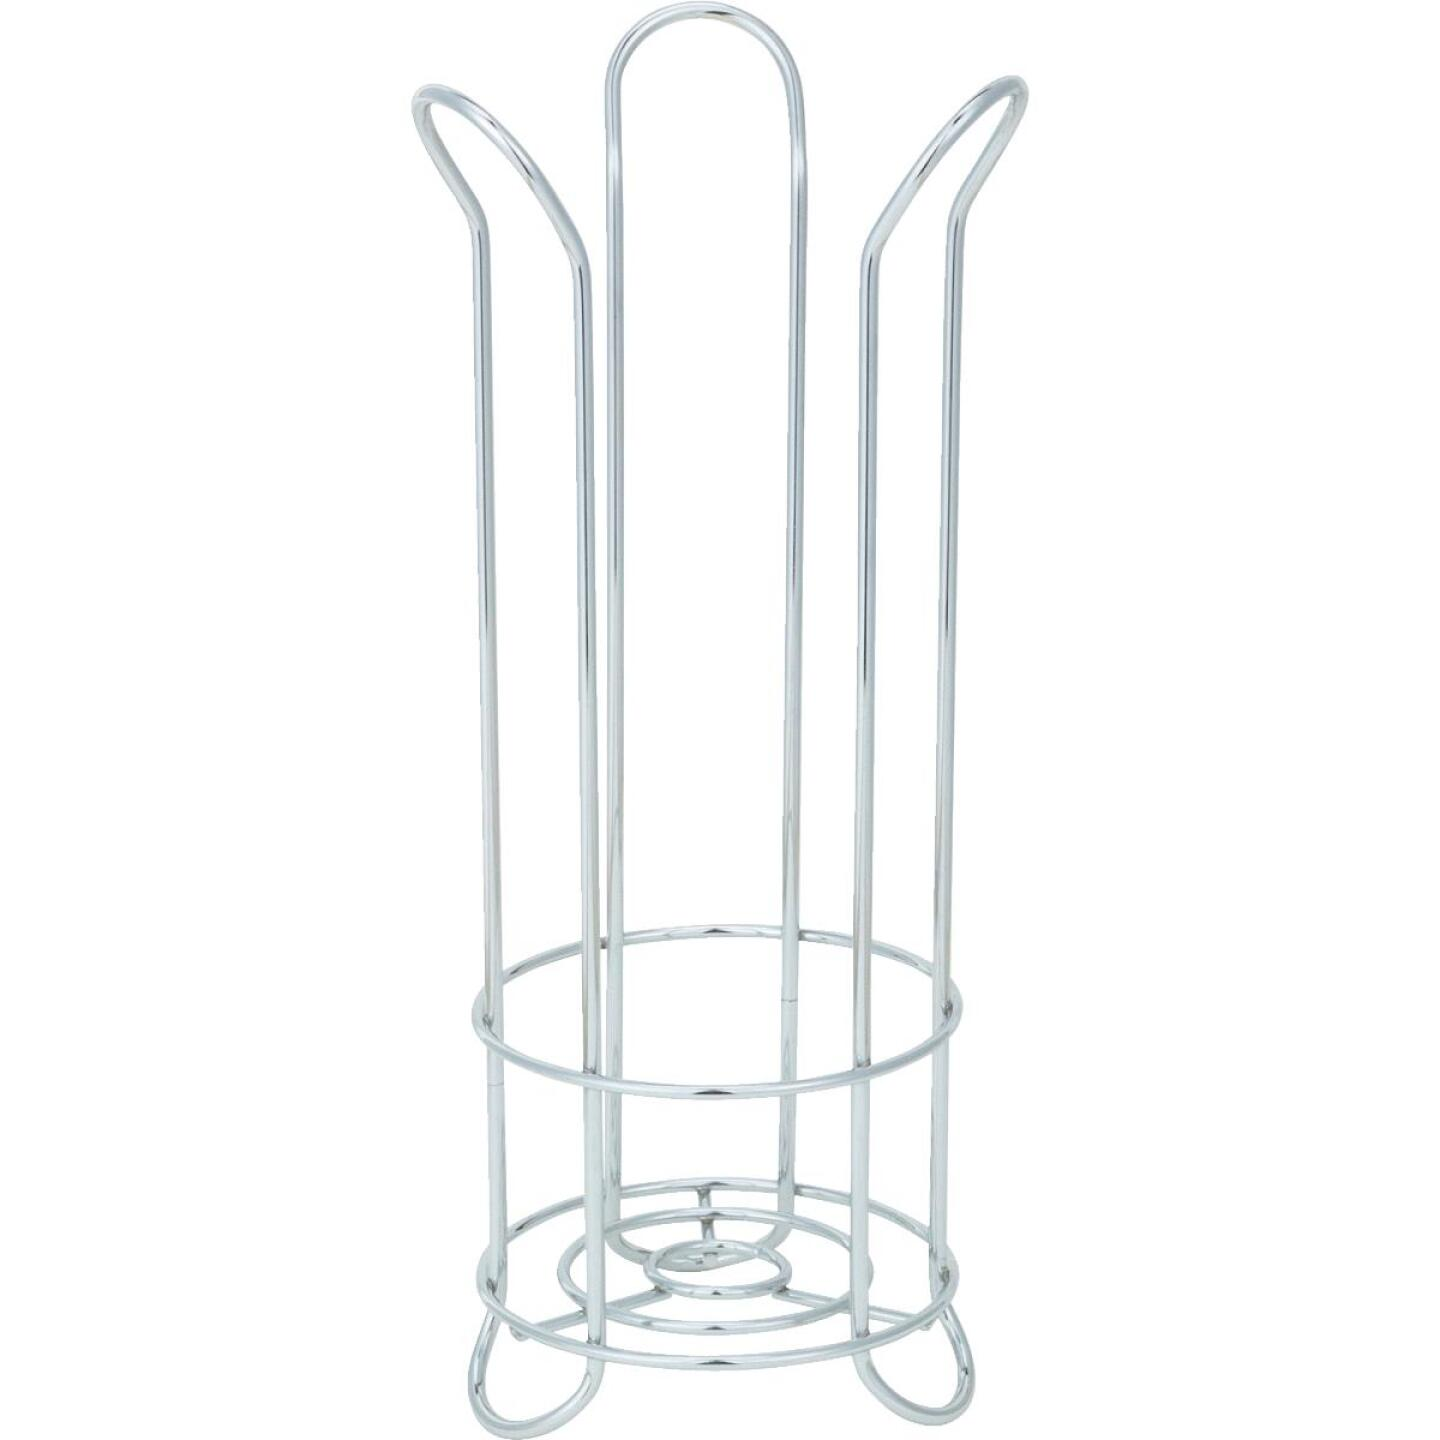 InterDesign Forma Chrome Tulip Freestanding Toilet Paper Holder Image 2